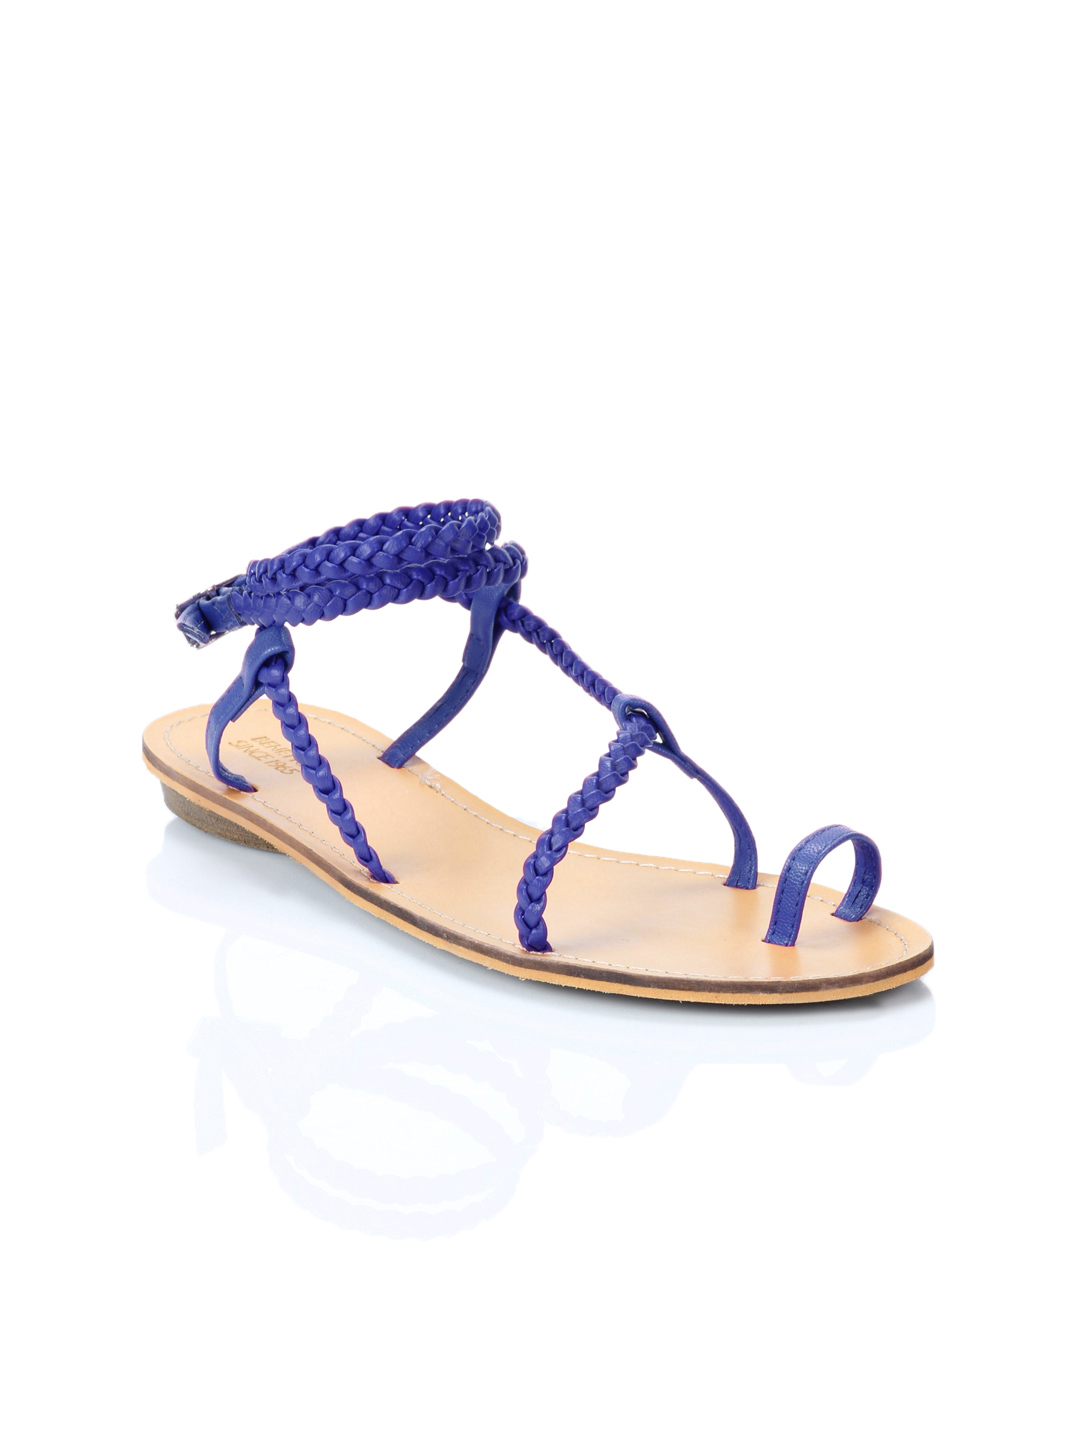 United Colors of Benetton Women Blue Sandals